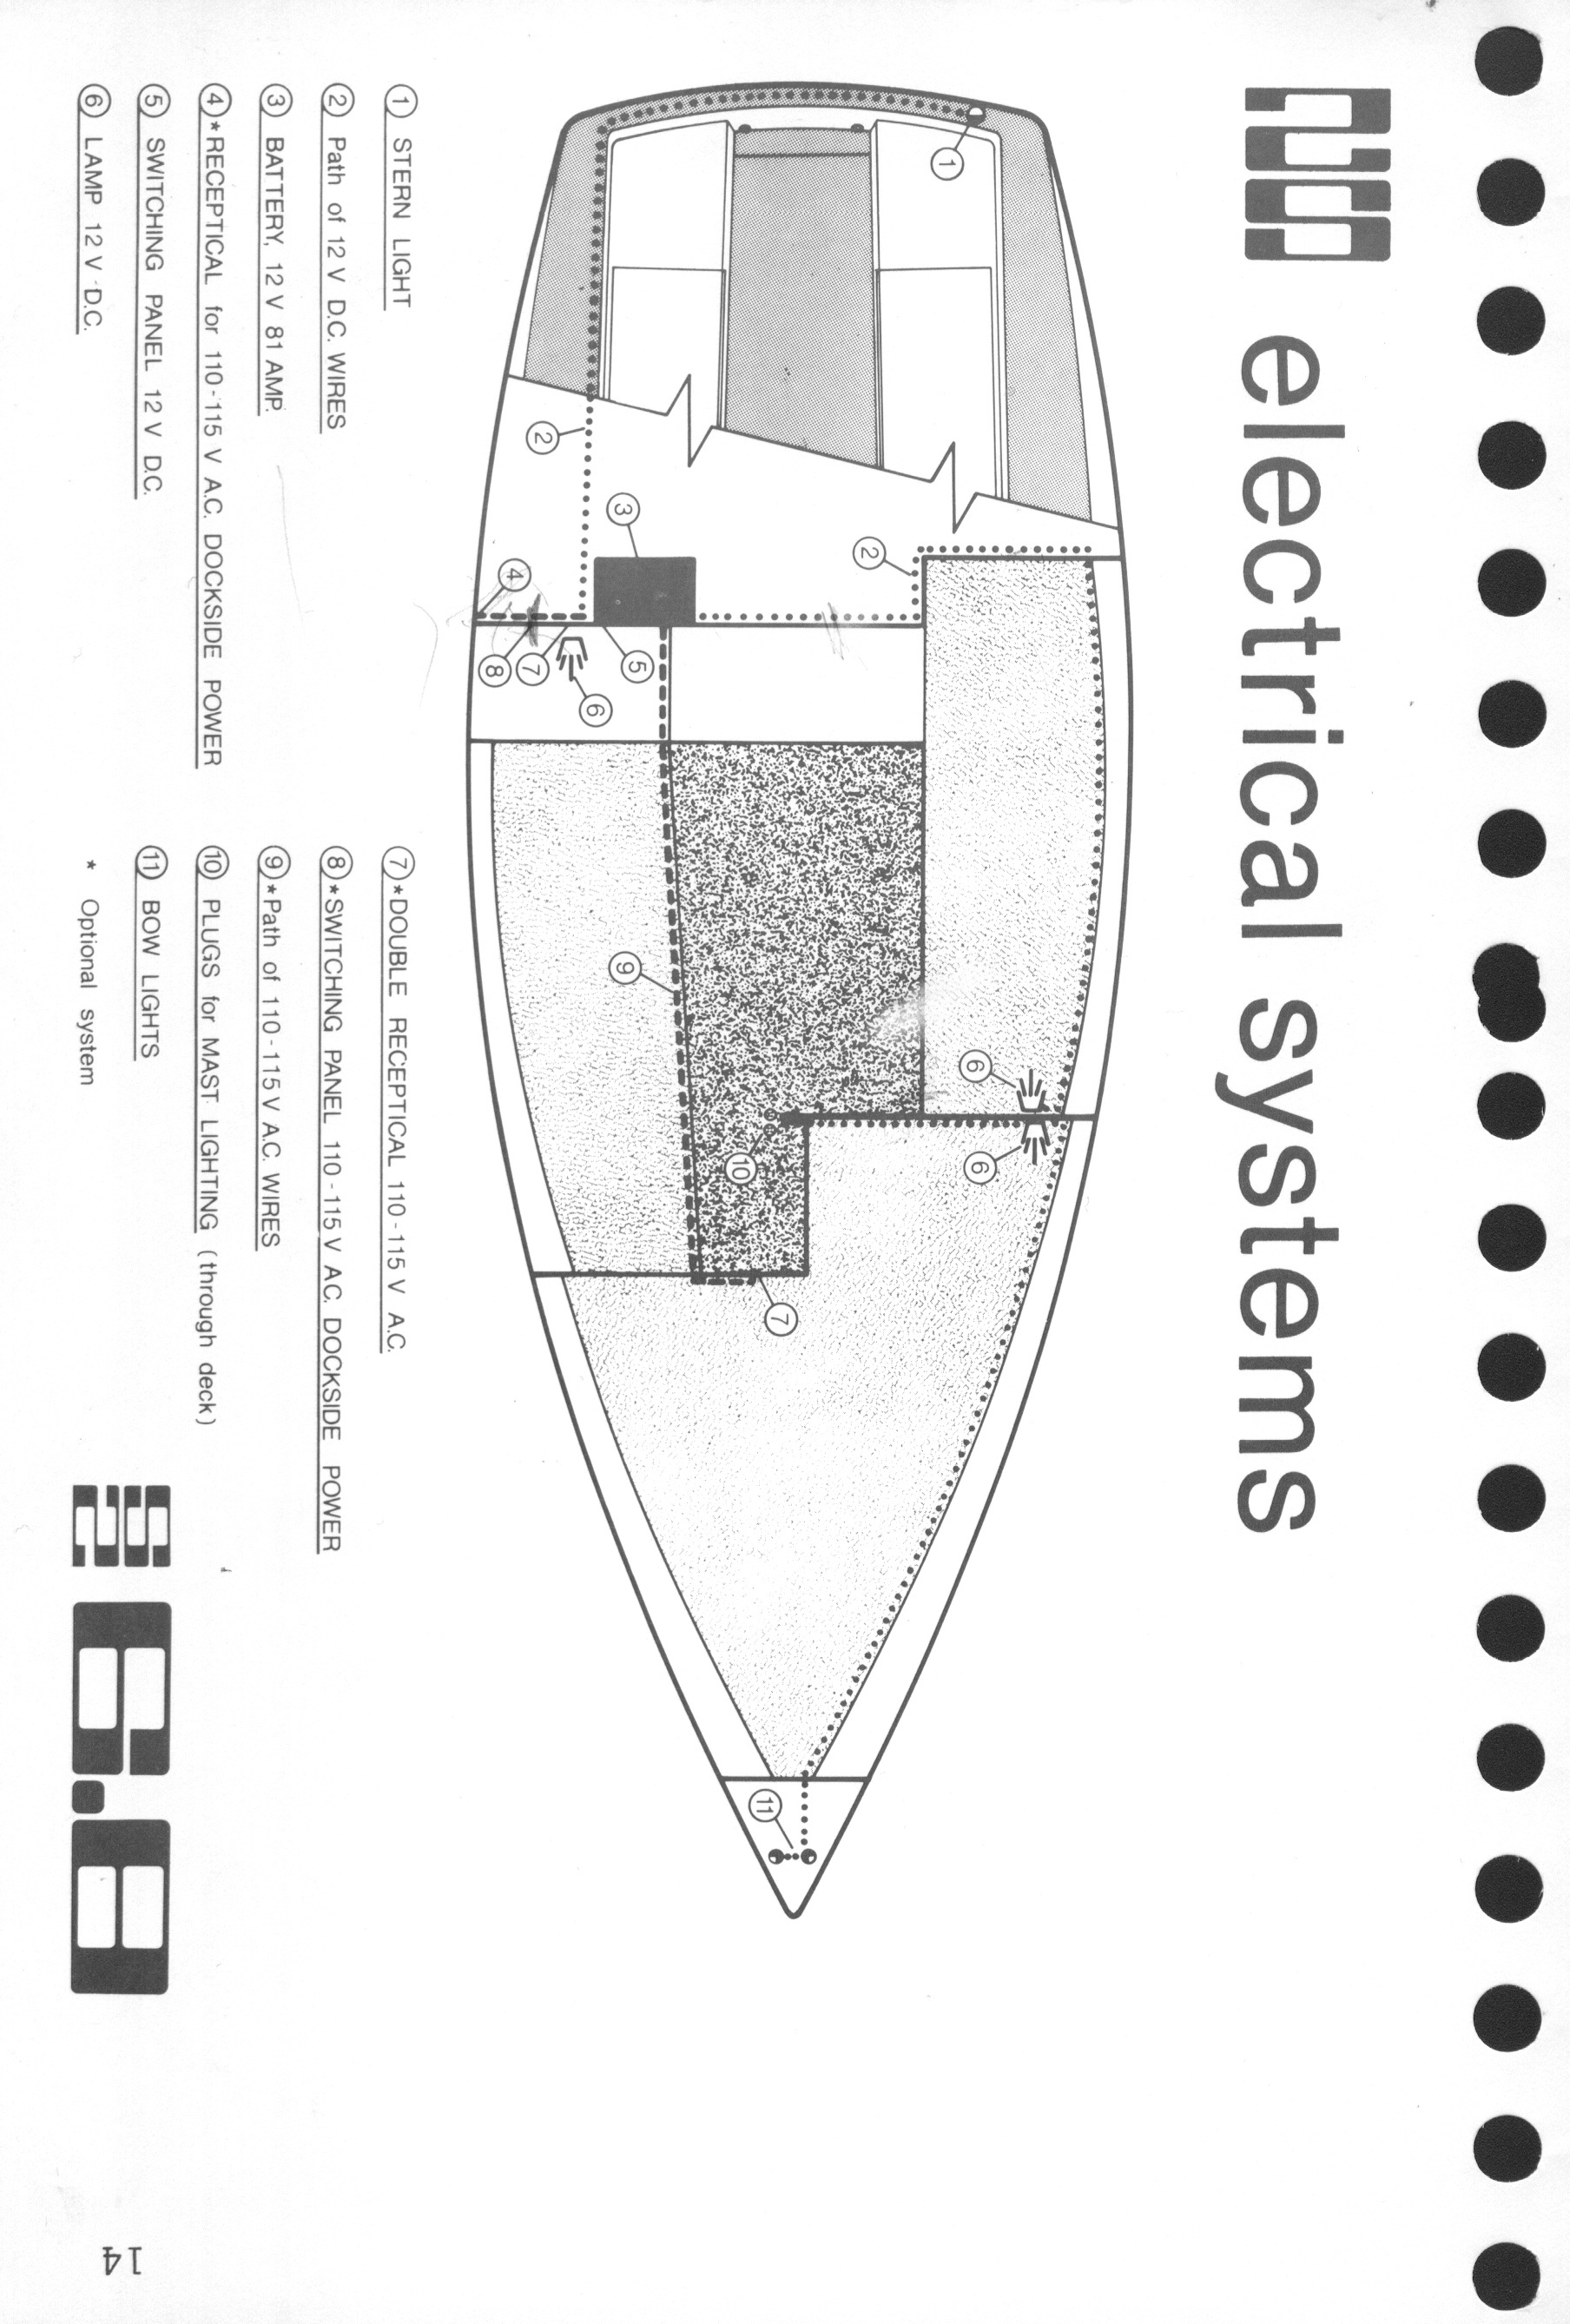 Electrical diagram - (manual page 14)